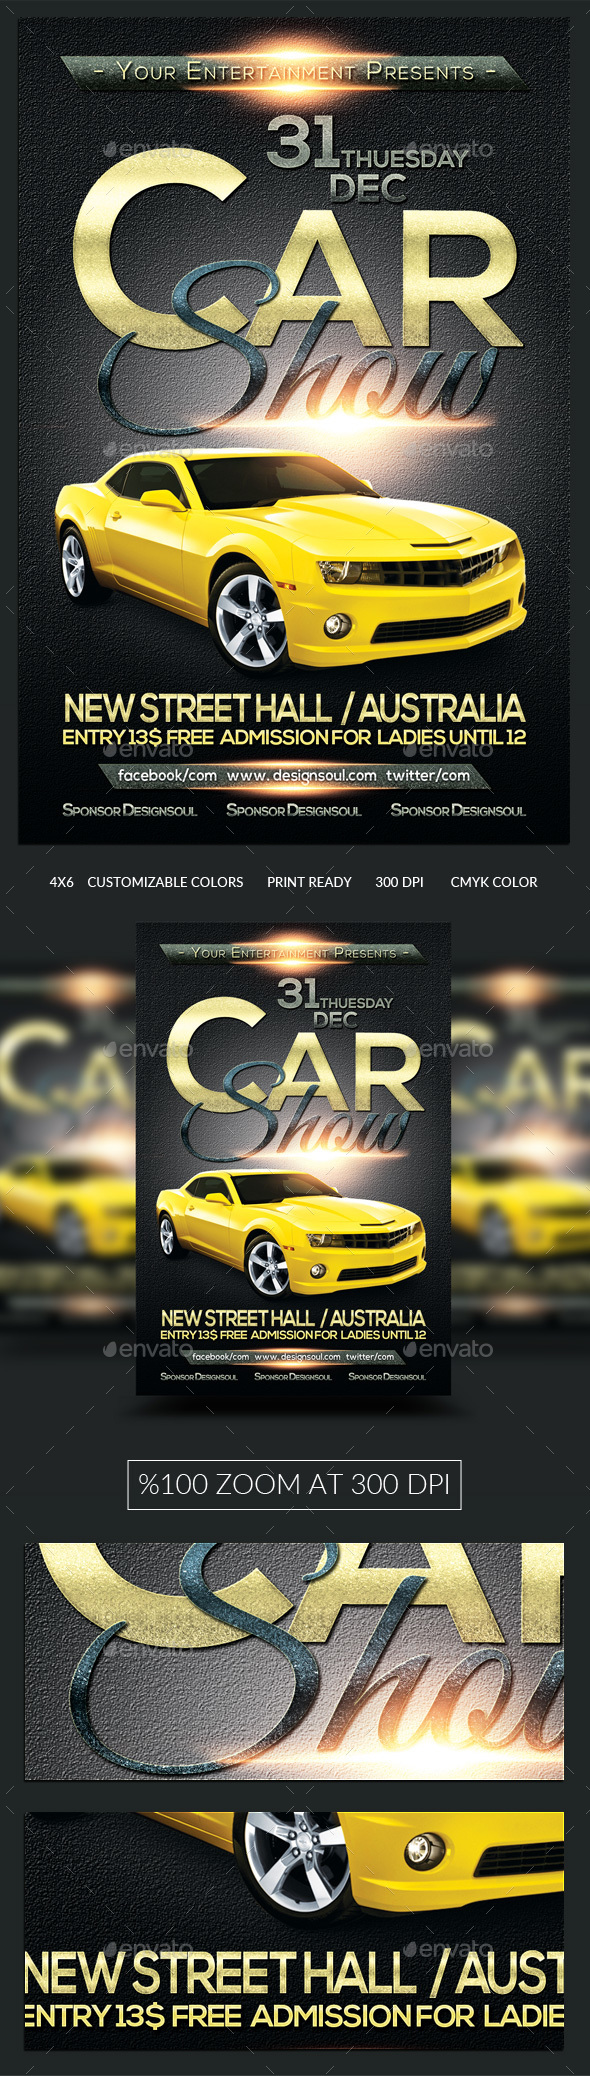 Car Show Flyer Template - Events Flyers